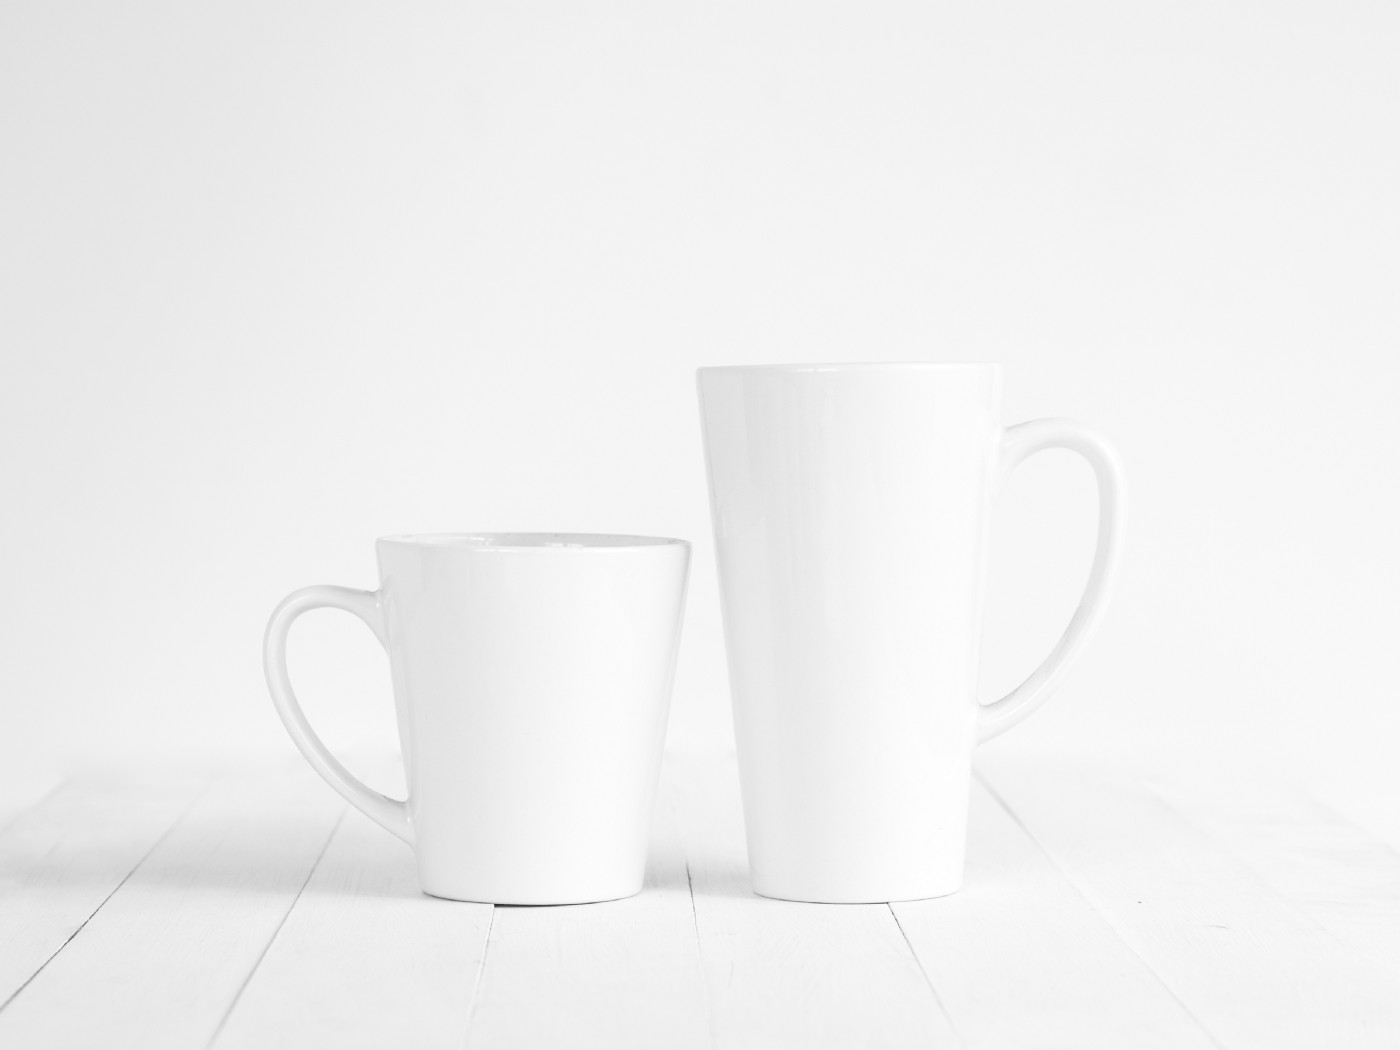 Two white mugs standing side by side—one small, one tall